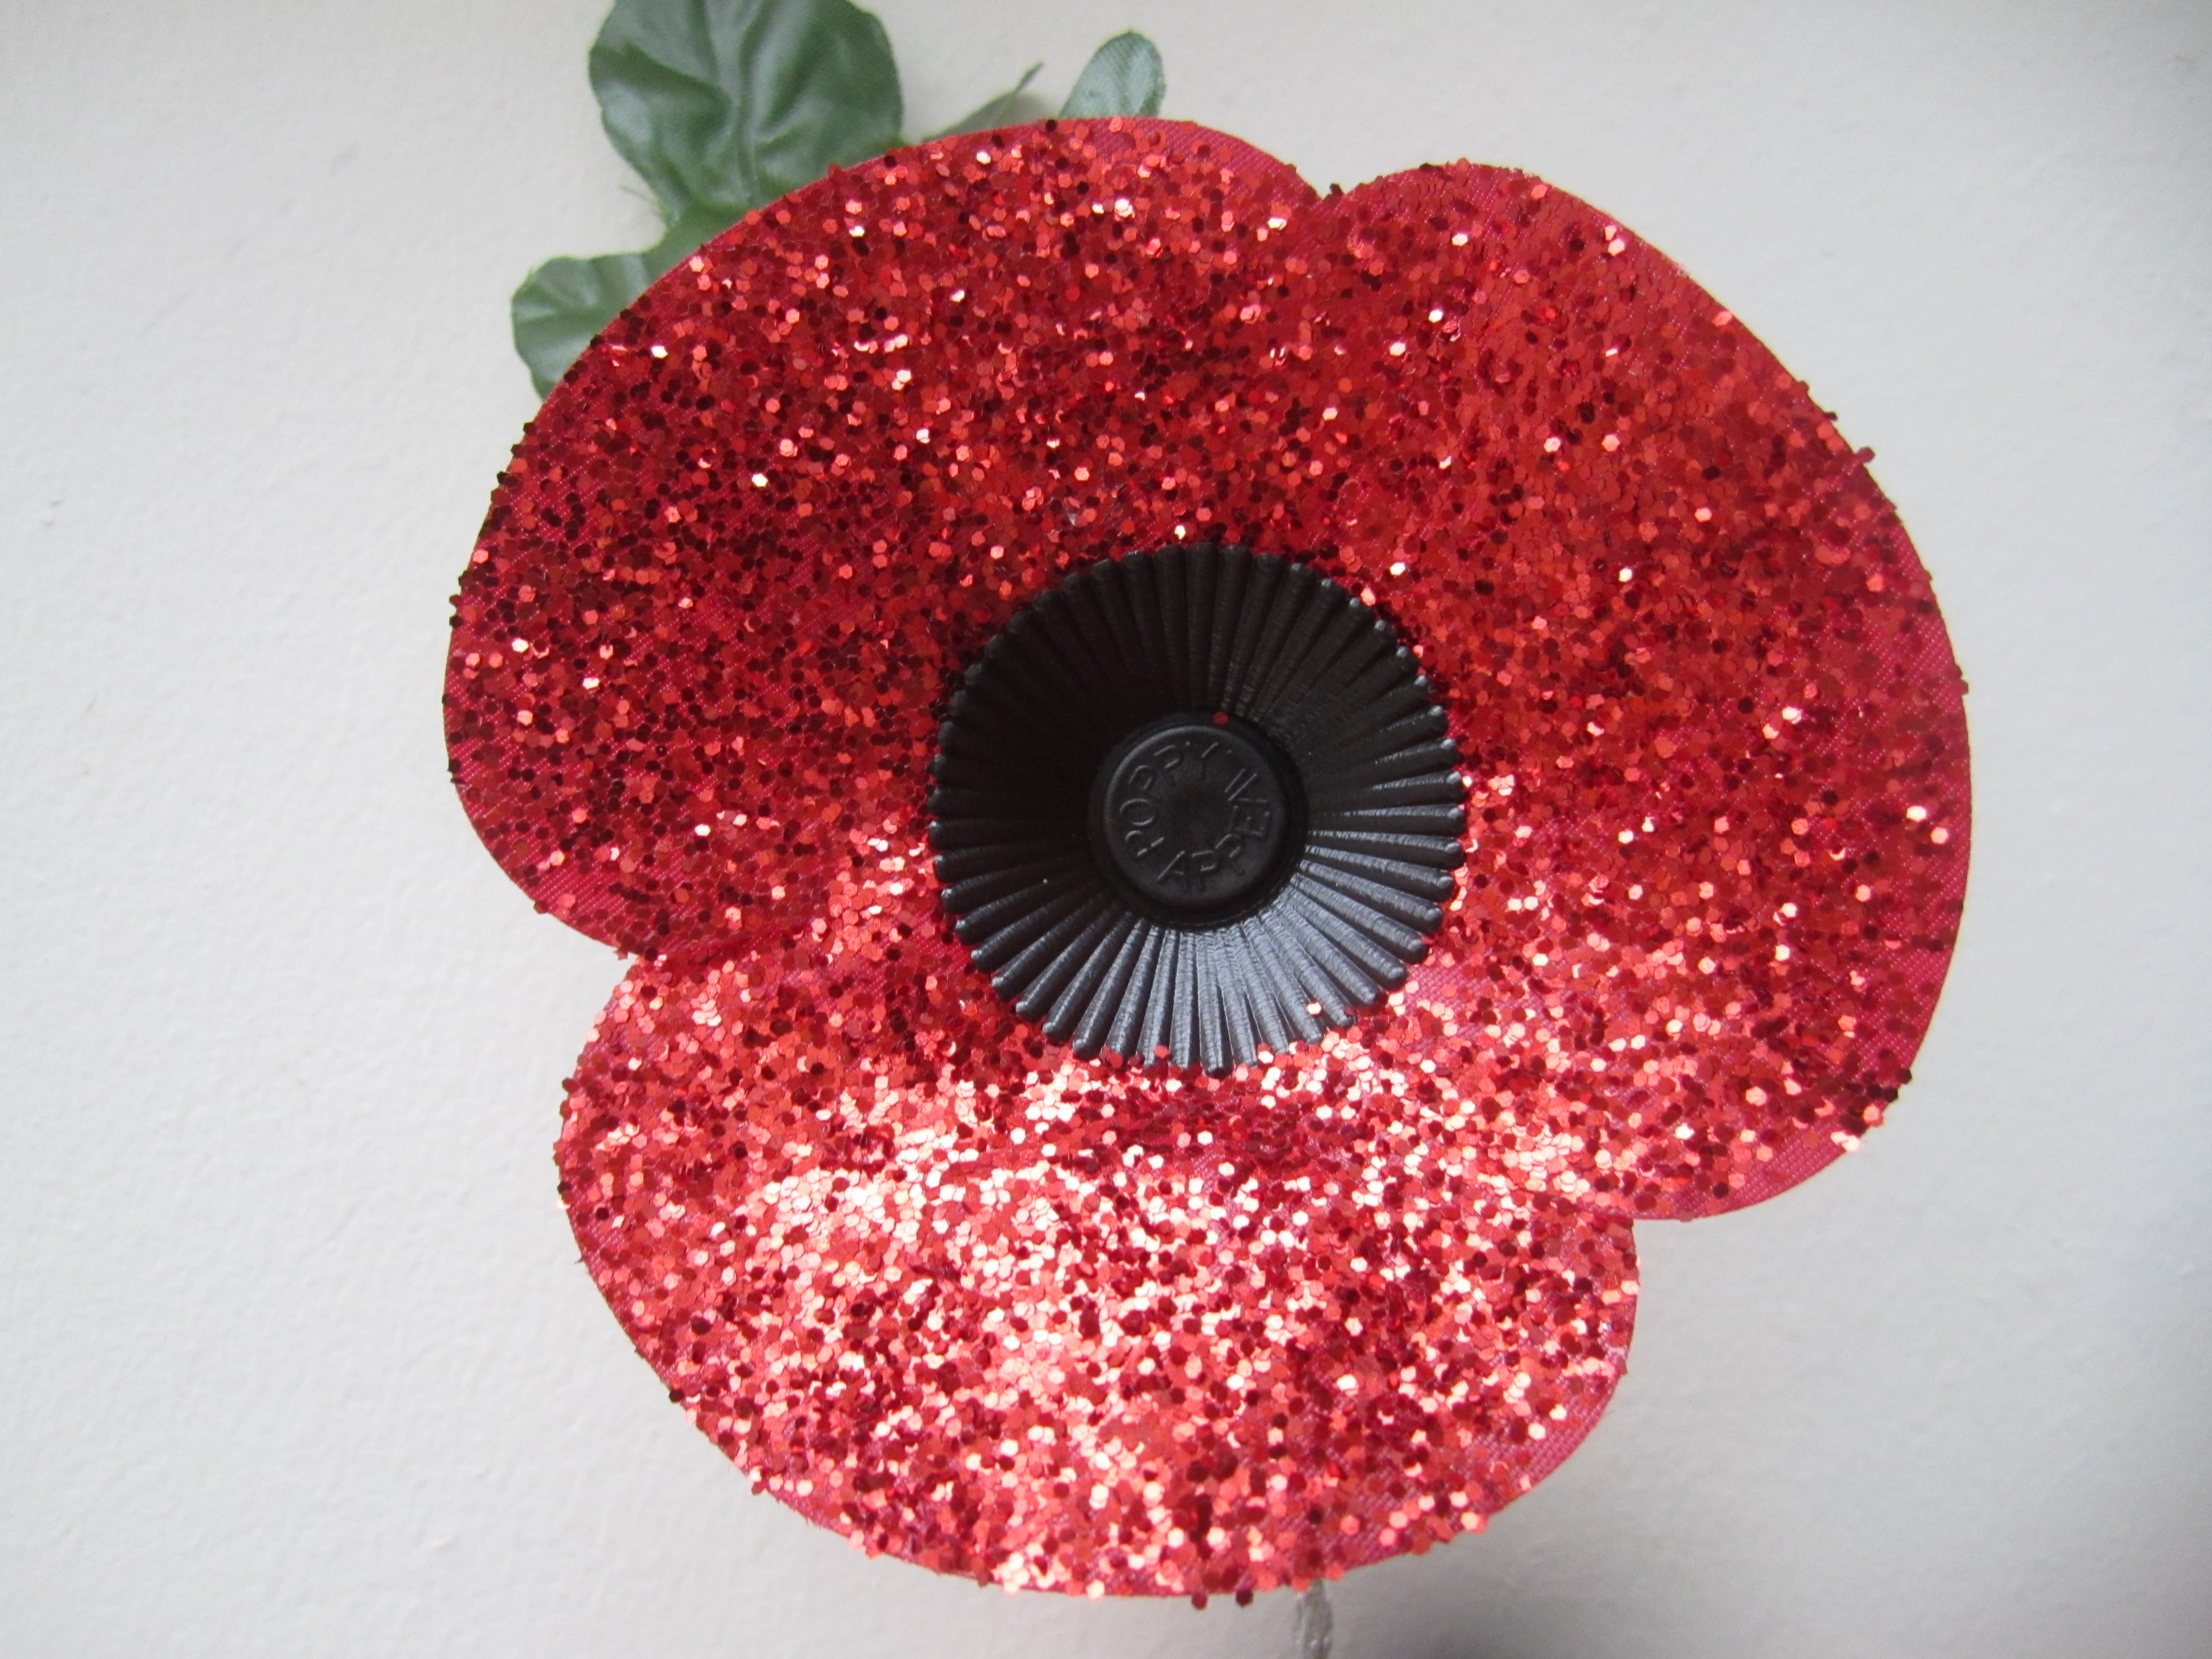 How to make a glitter poppy sew make play how to make a glitter poppy izmirmasajfo